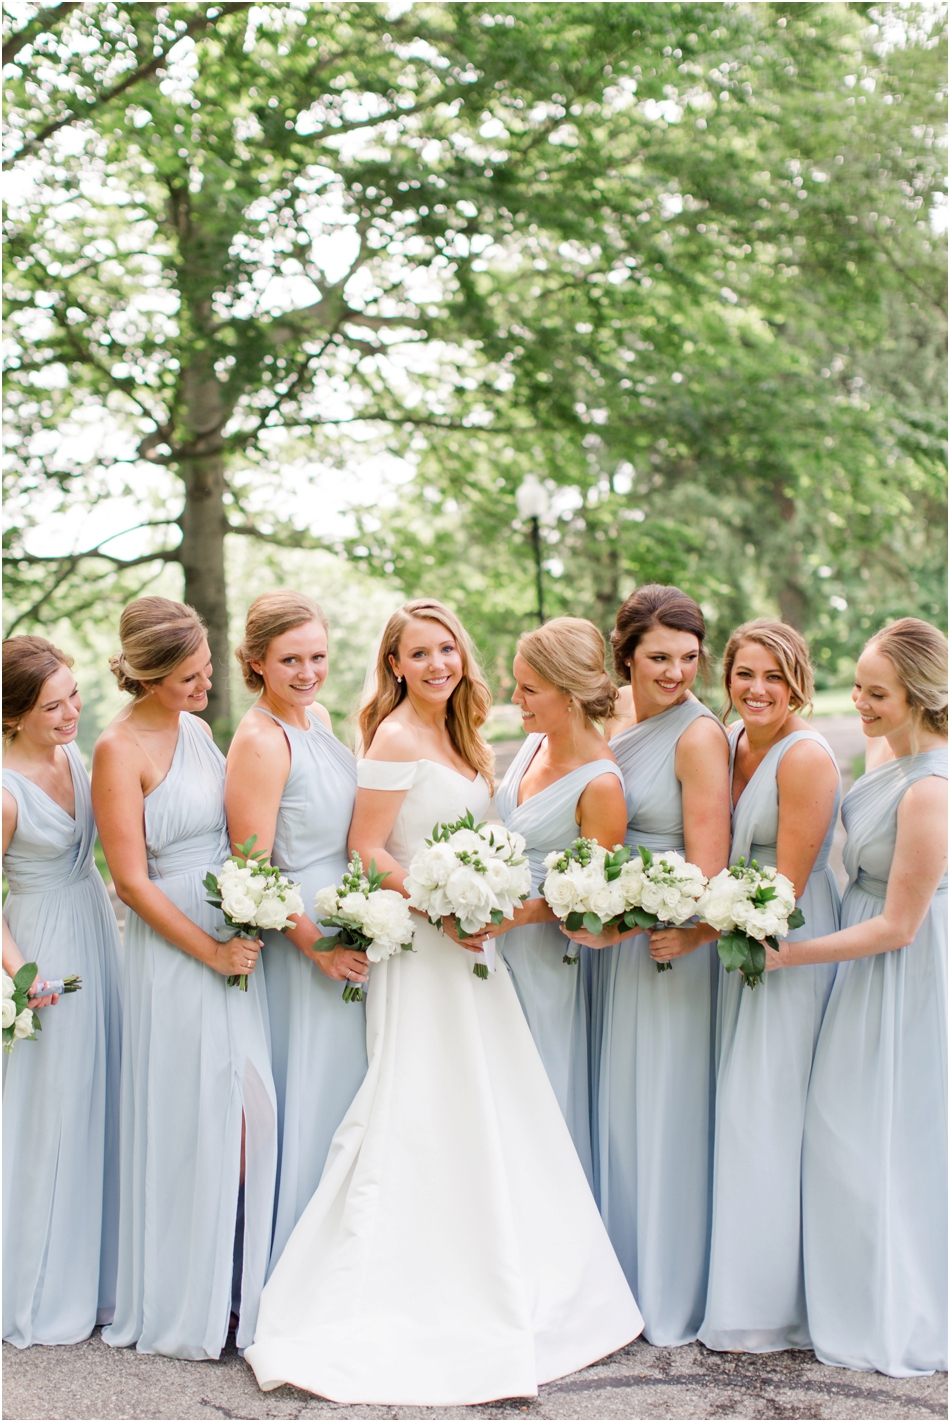 Bridesmaids-photo-ideas